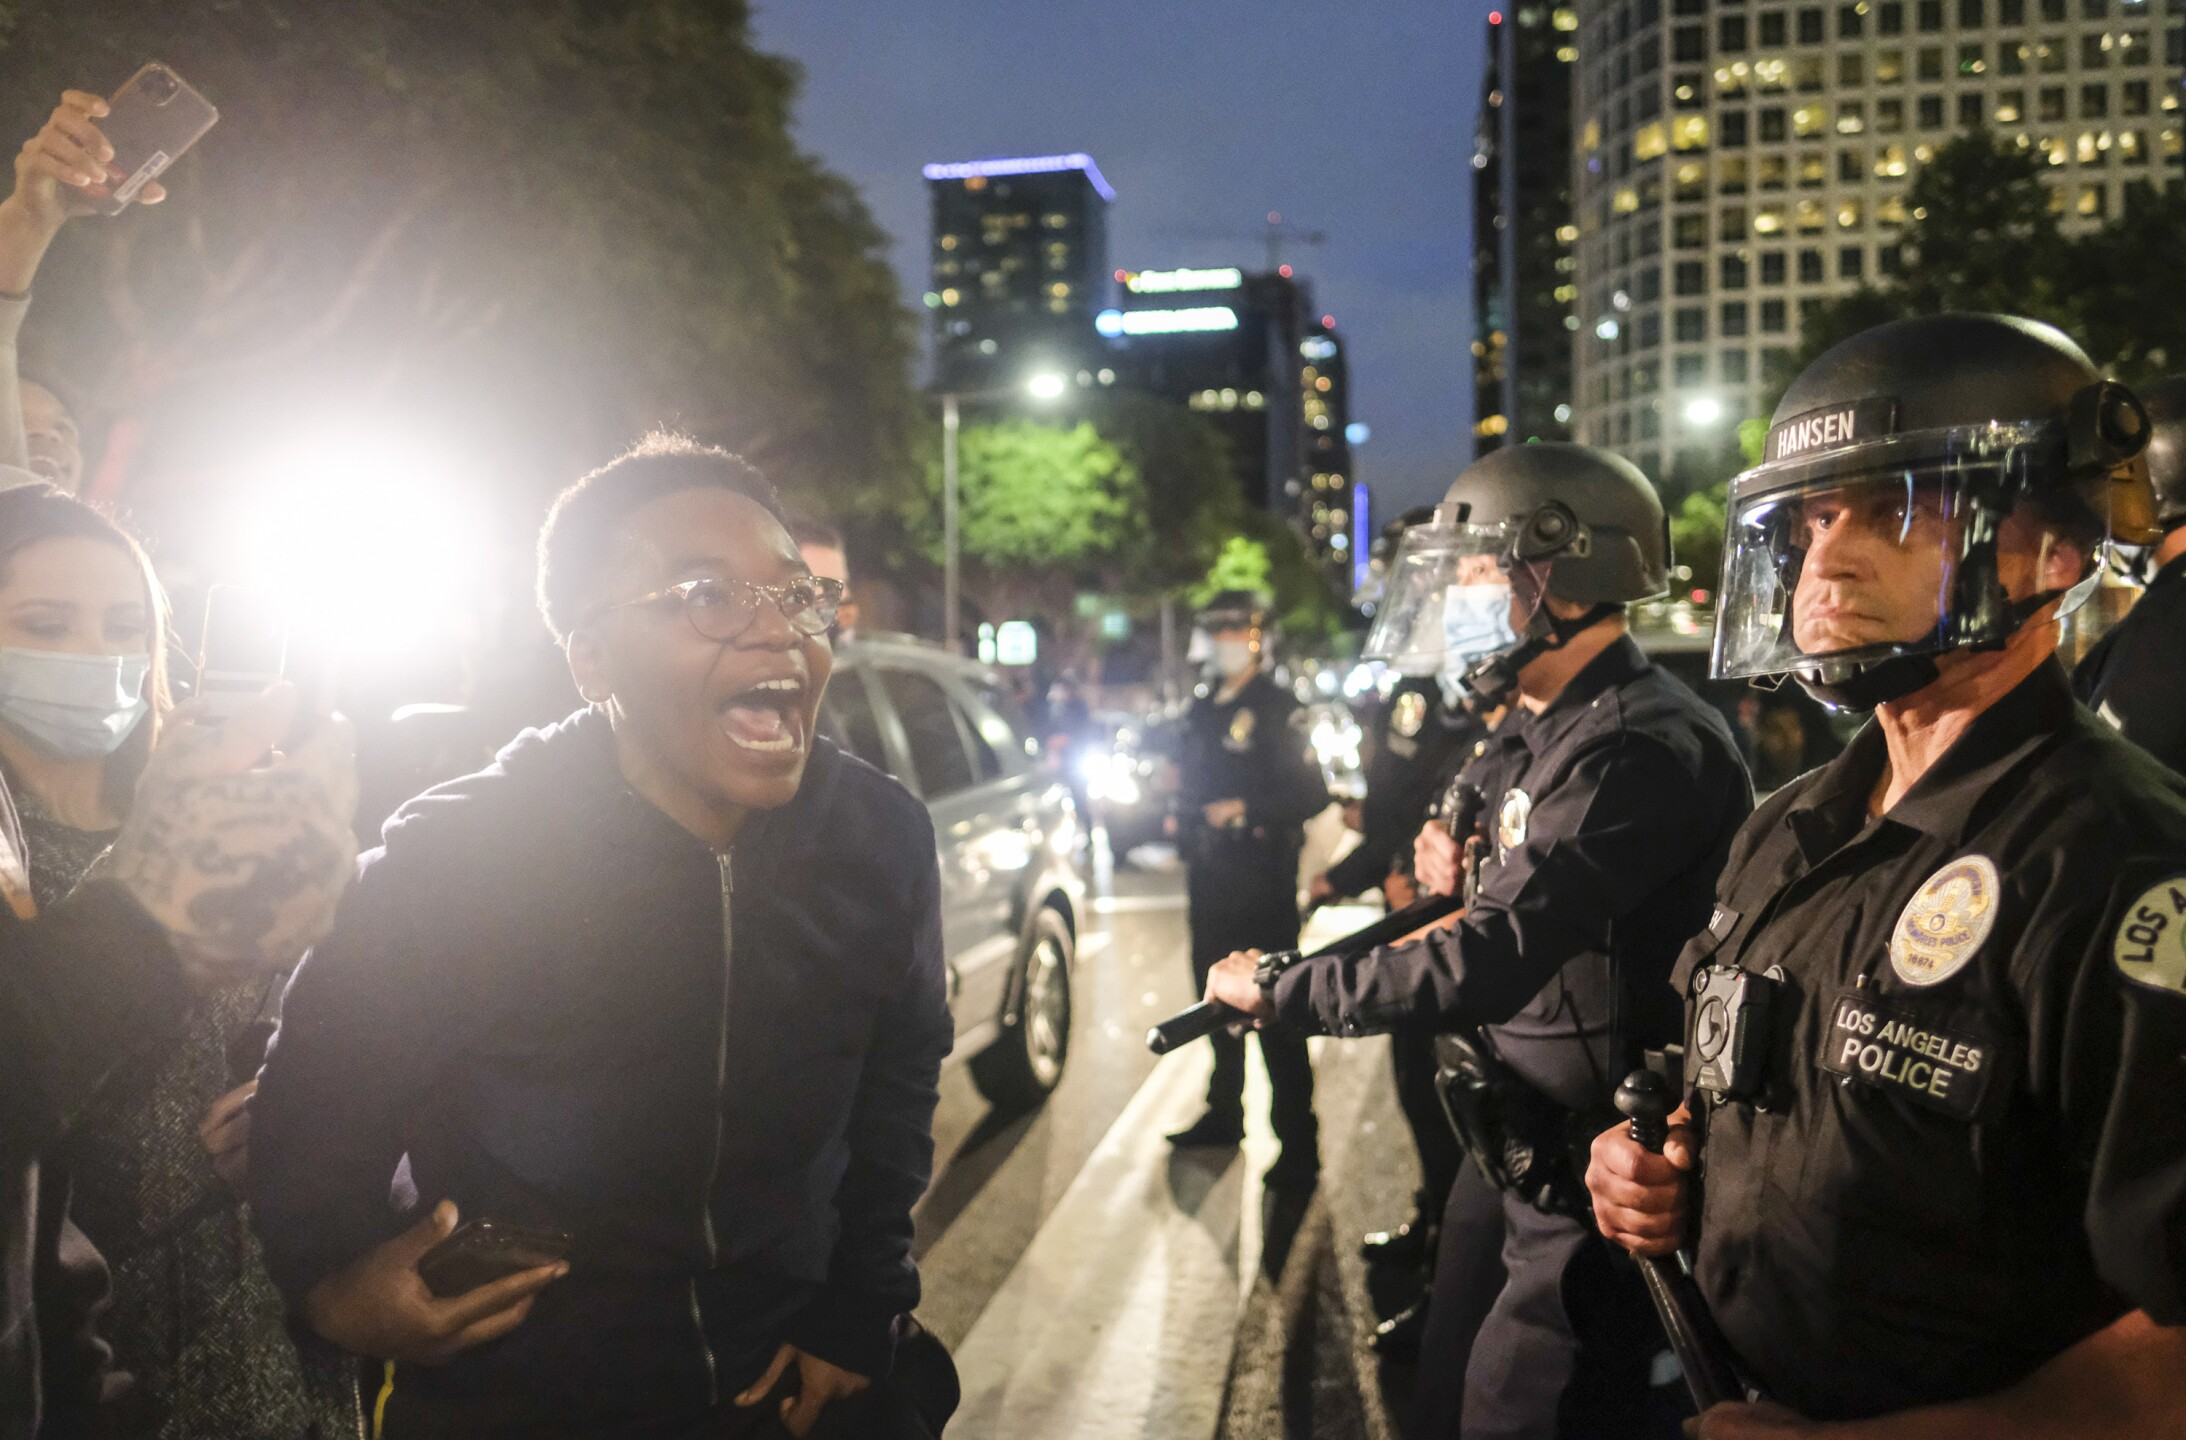 PHOTOS: Scenes from protests across U.S. Friday for George Floyd